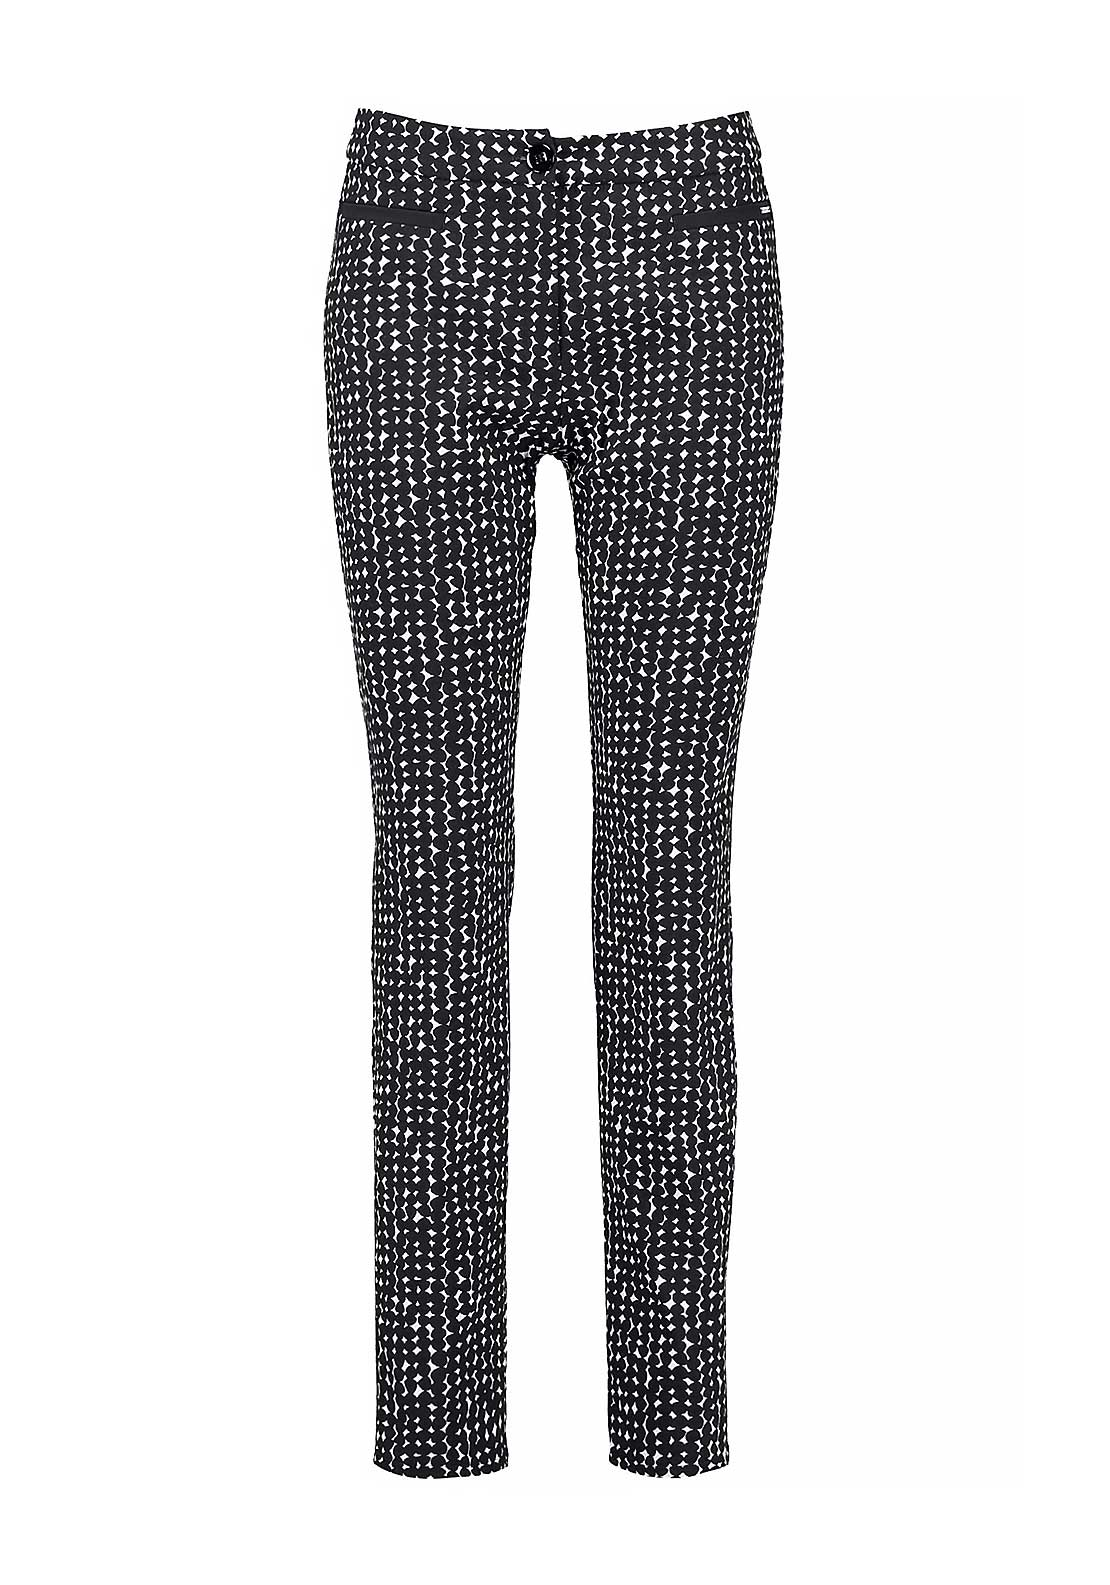 Gerry Weber Graphic Print Slim Leg Jersey Trousers, Black